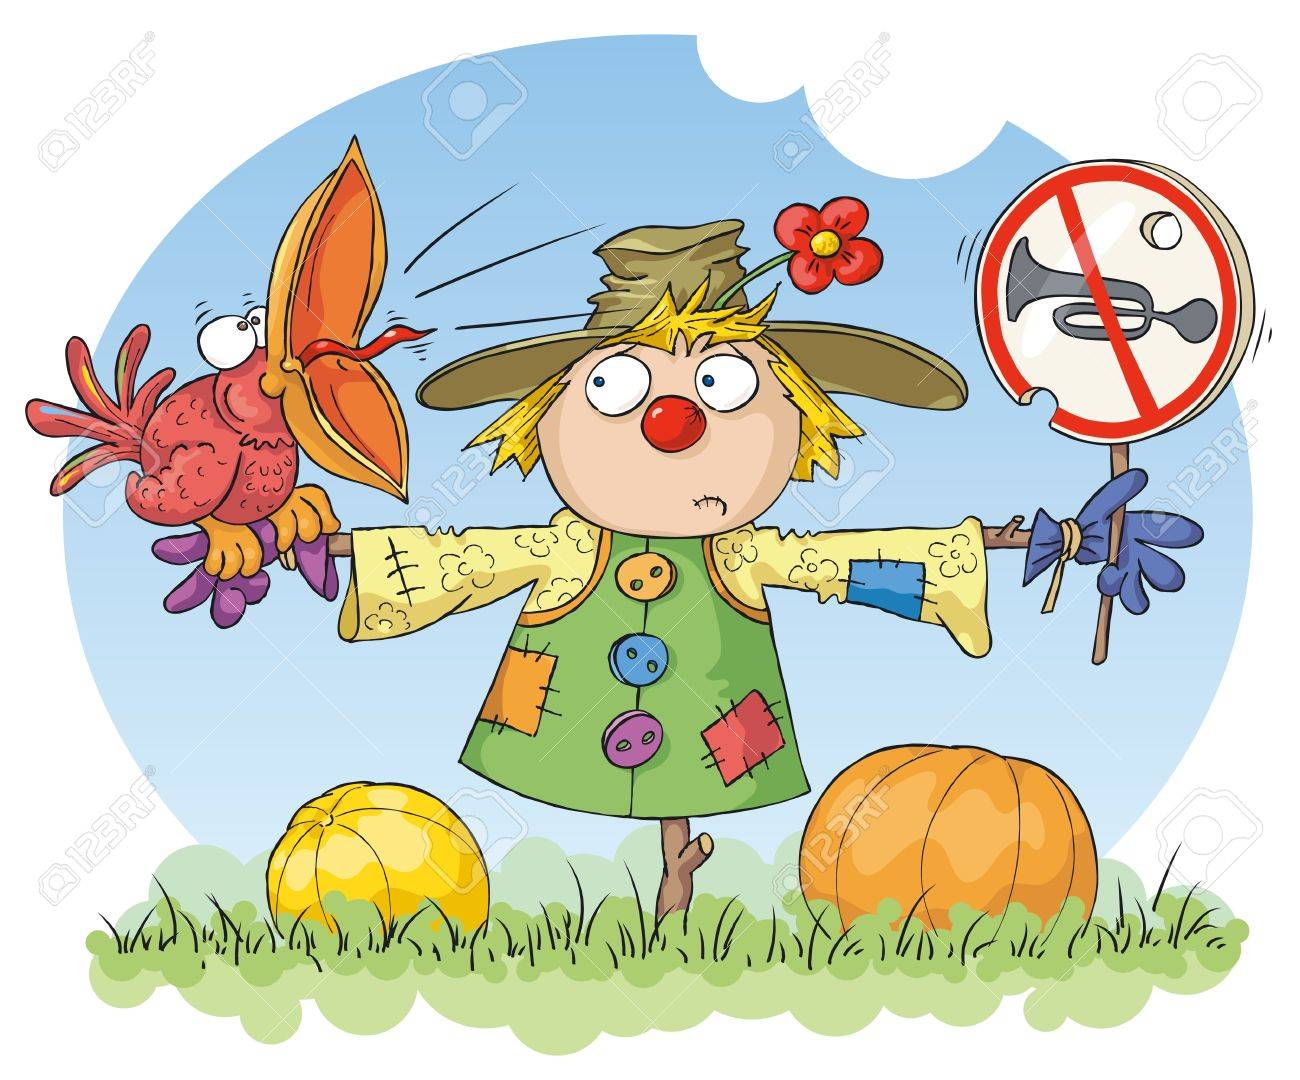 Scarecrow with a red bird and a noise prohibition sign. Stock Vector - 11342175